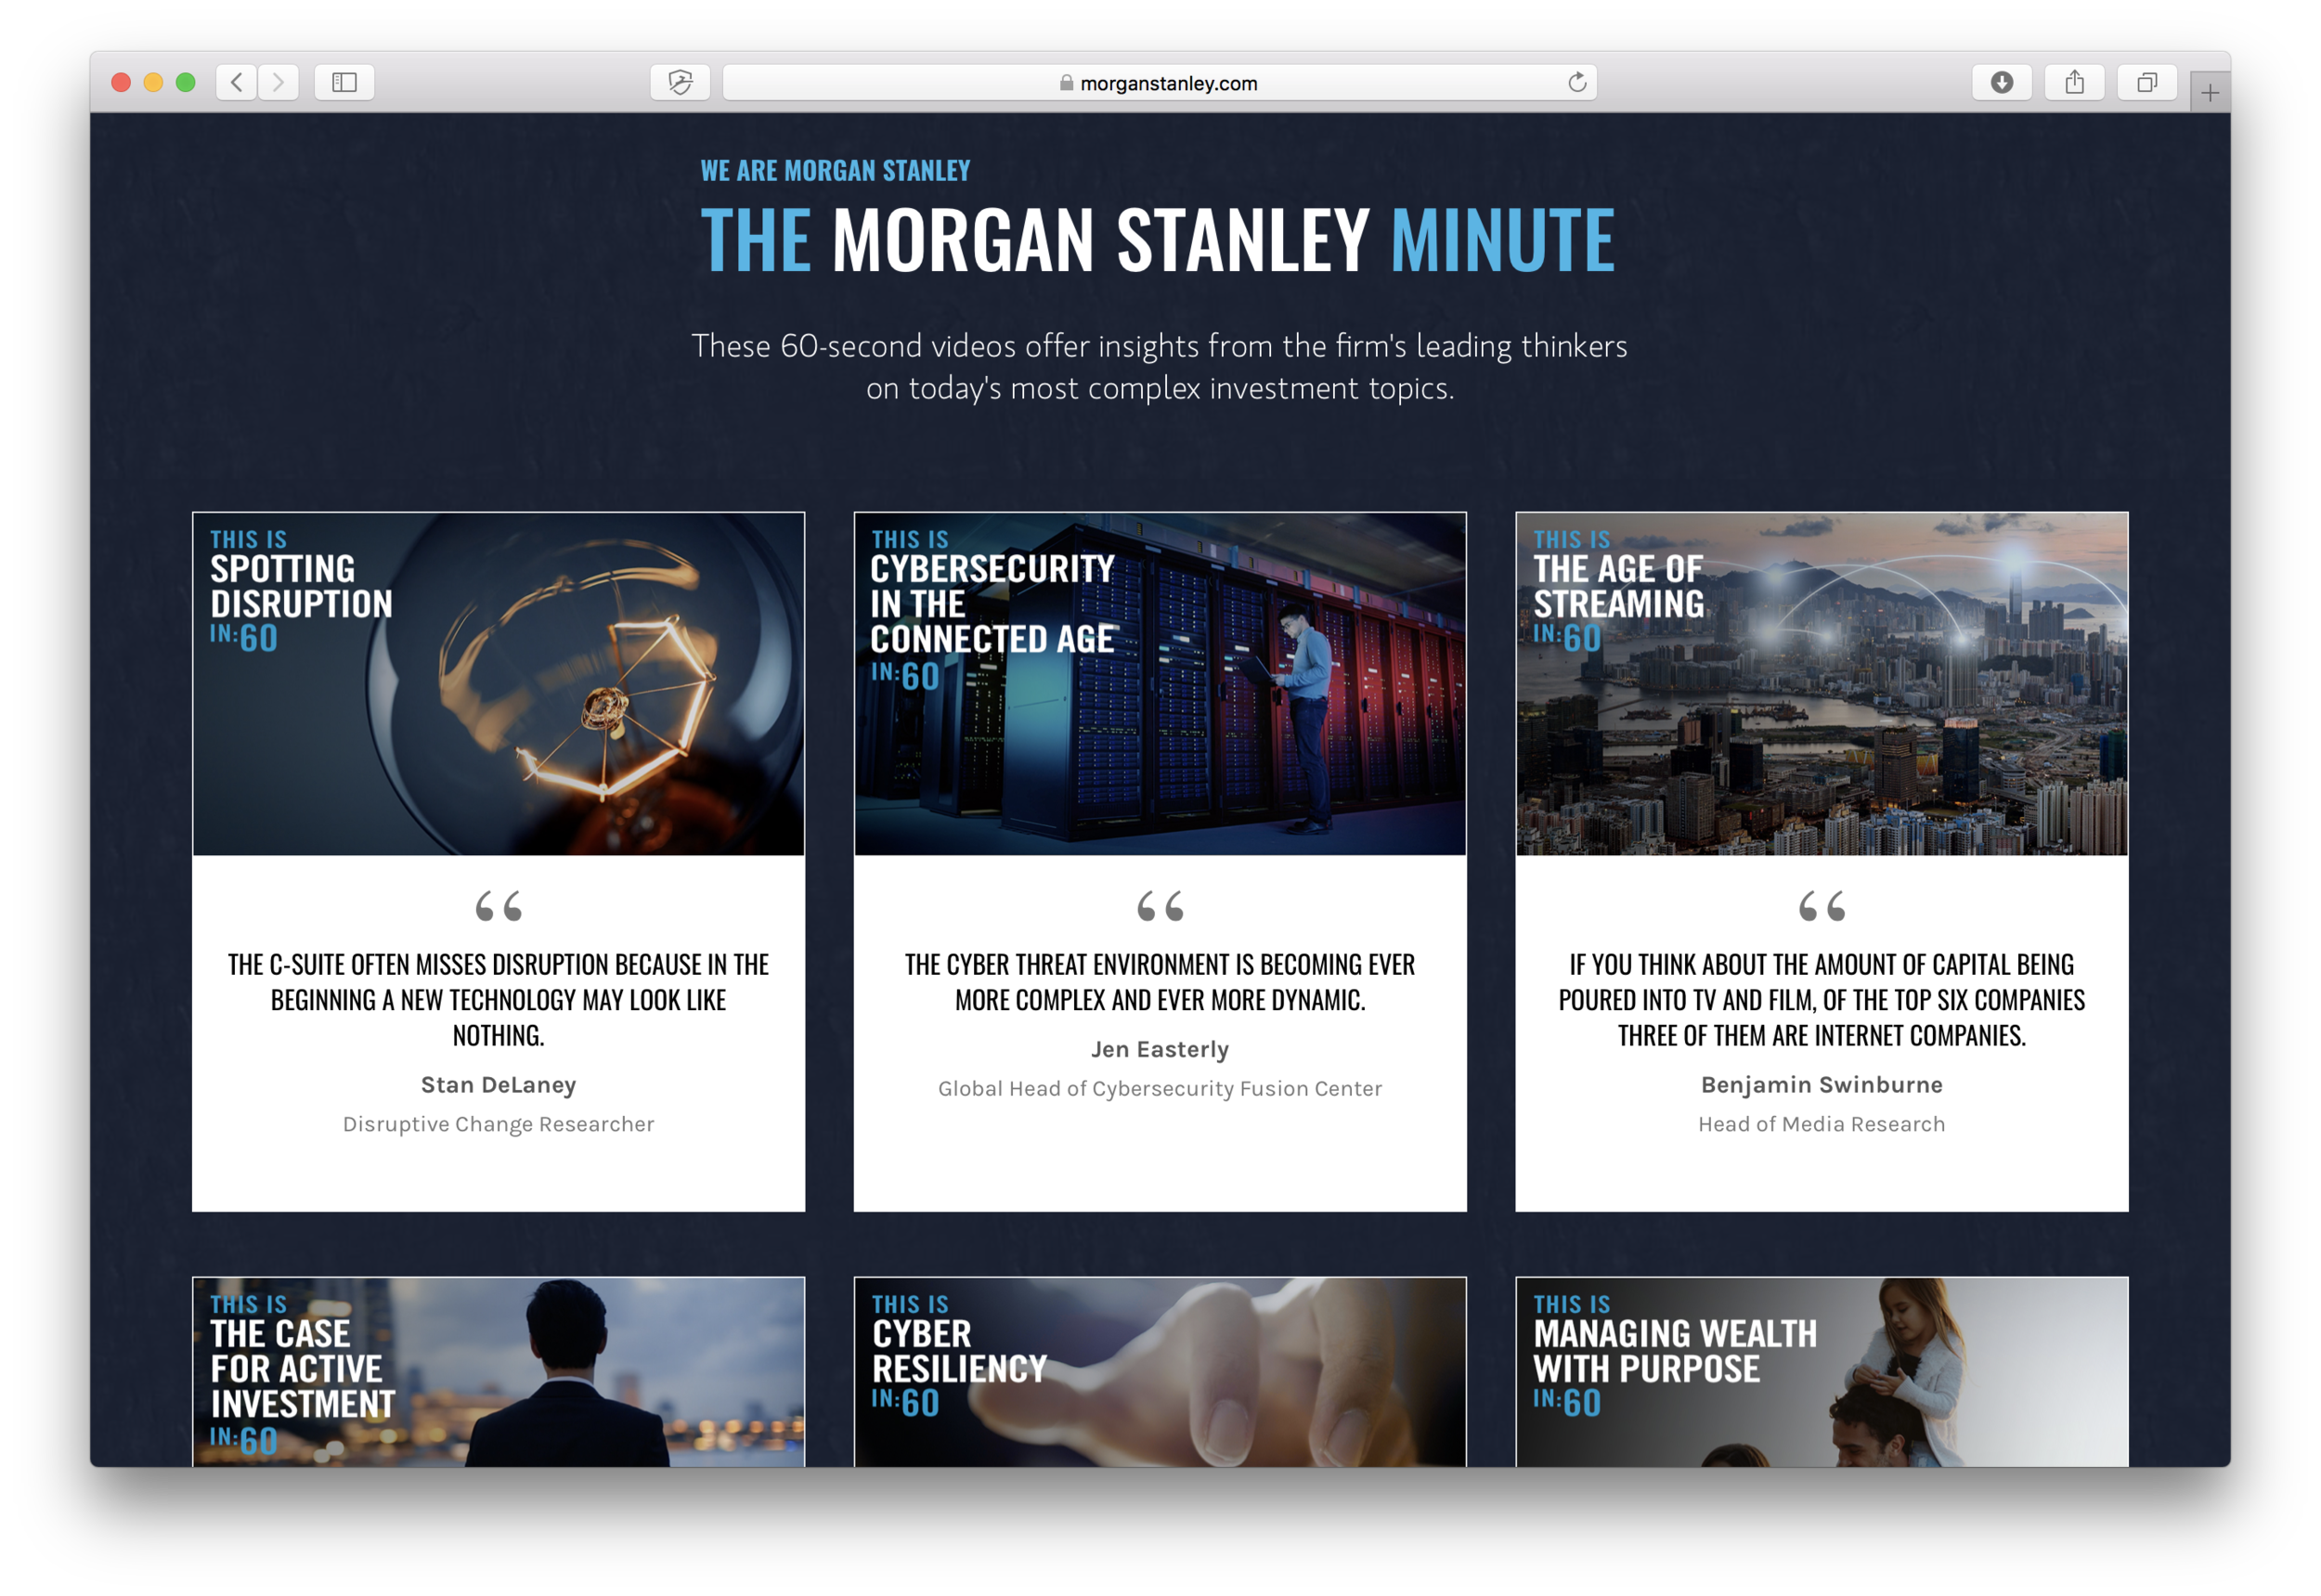 A hub on their website allows audiences to browse more minutes, meet more Morgan Stanley experts, and dig deeper into the white papers and positions.